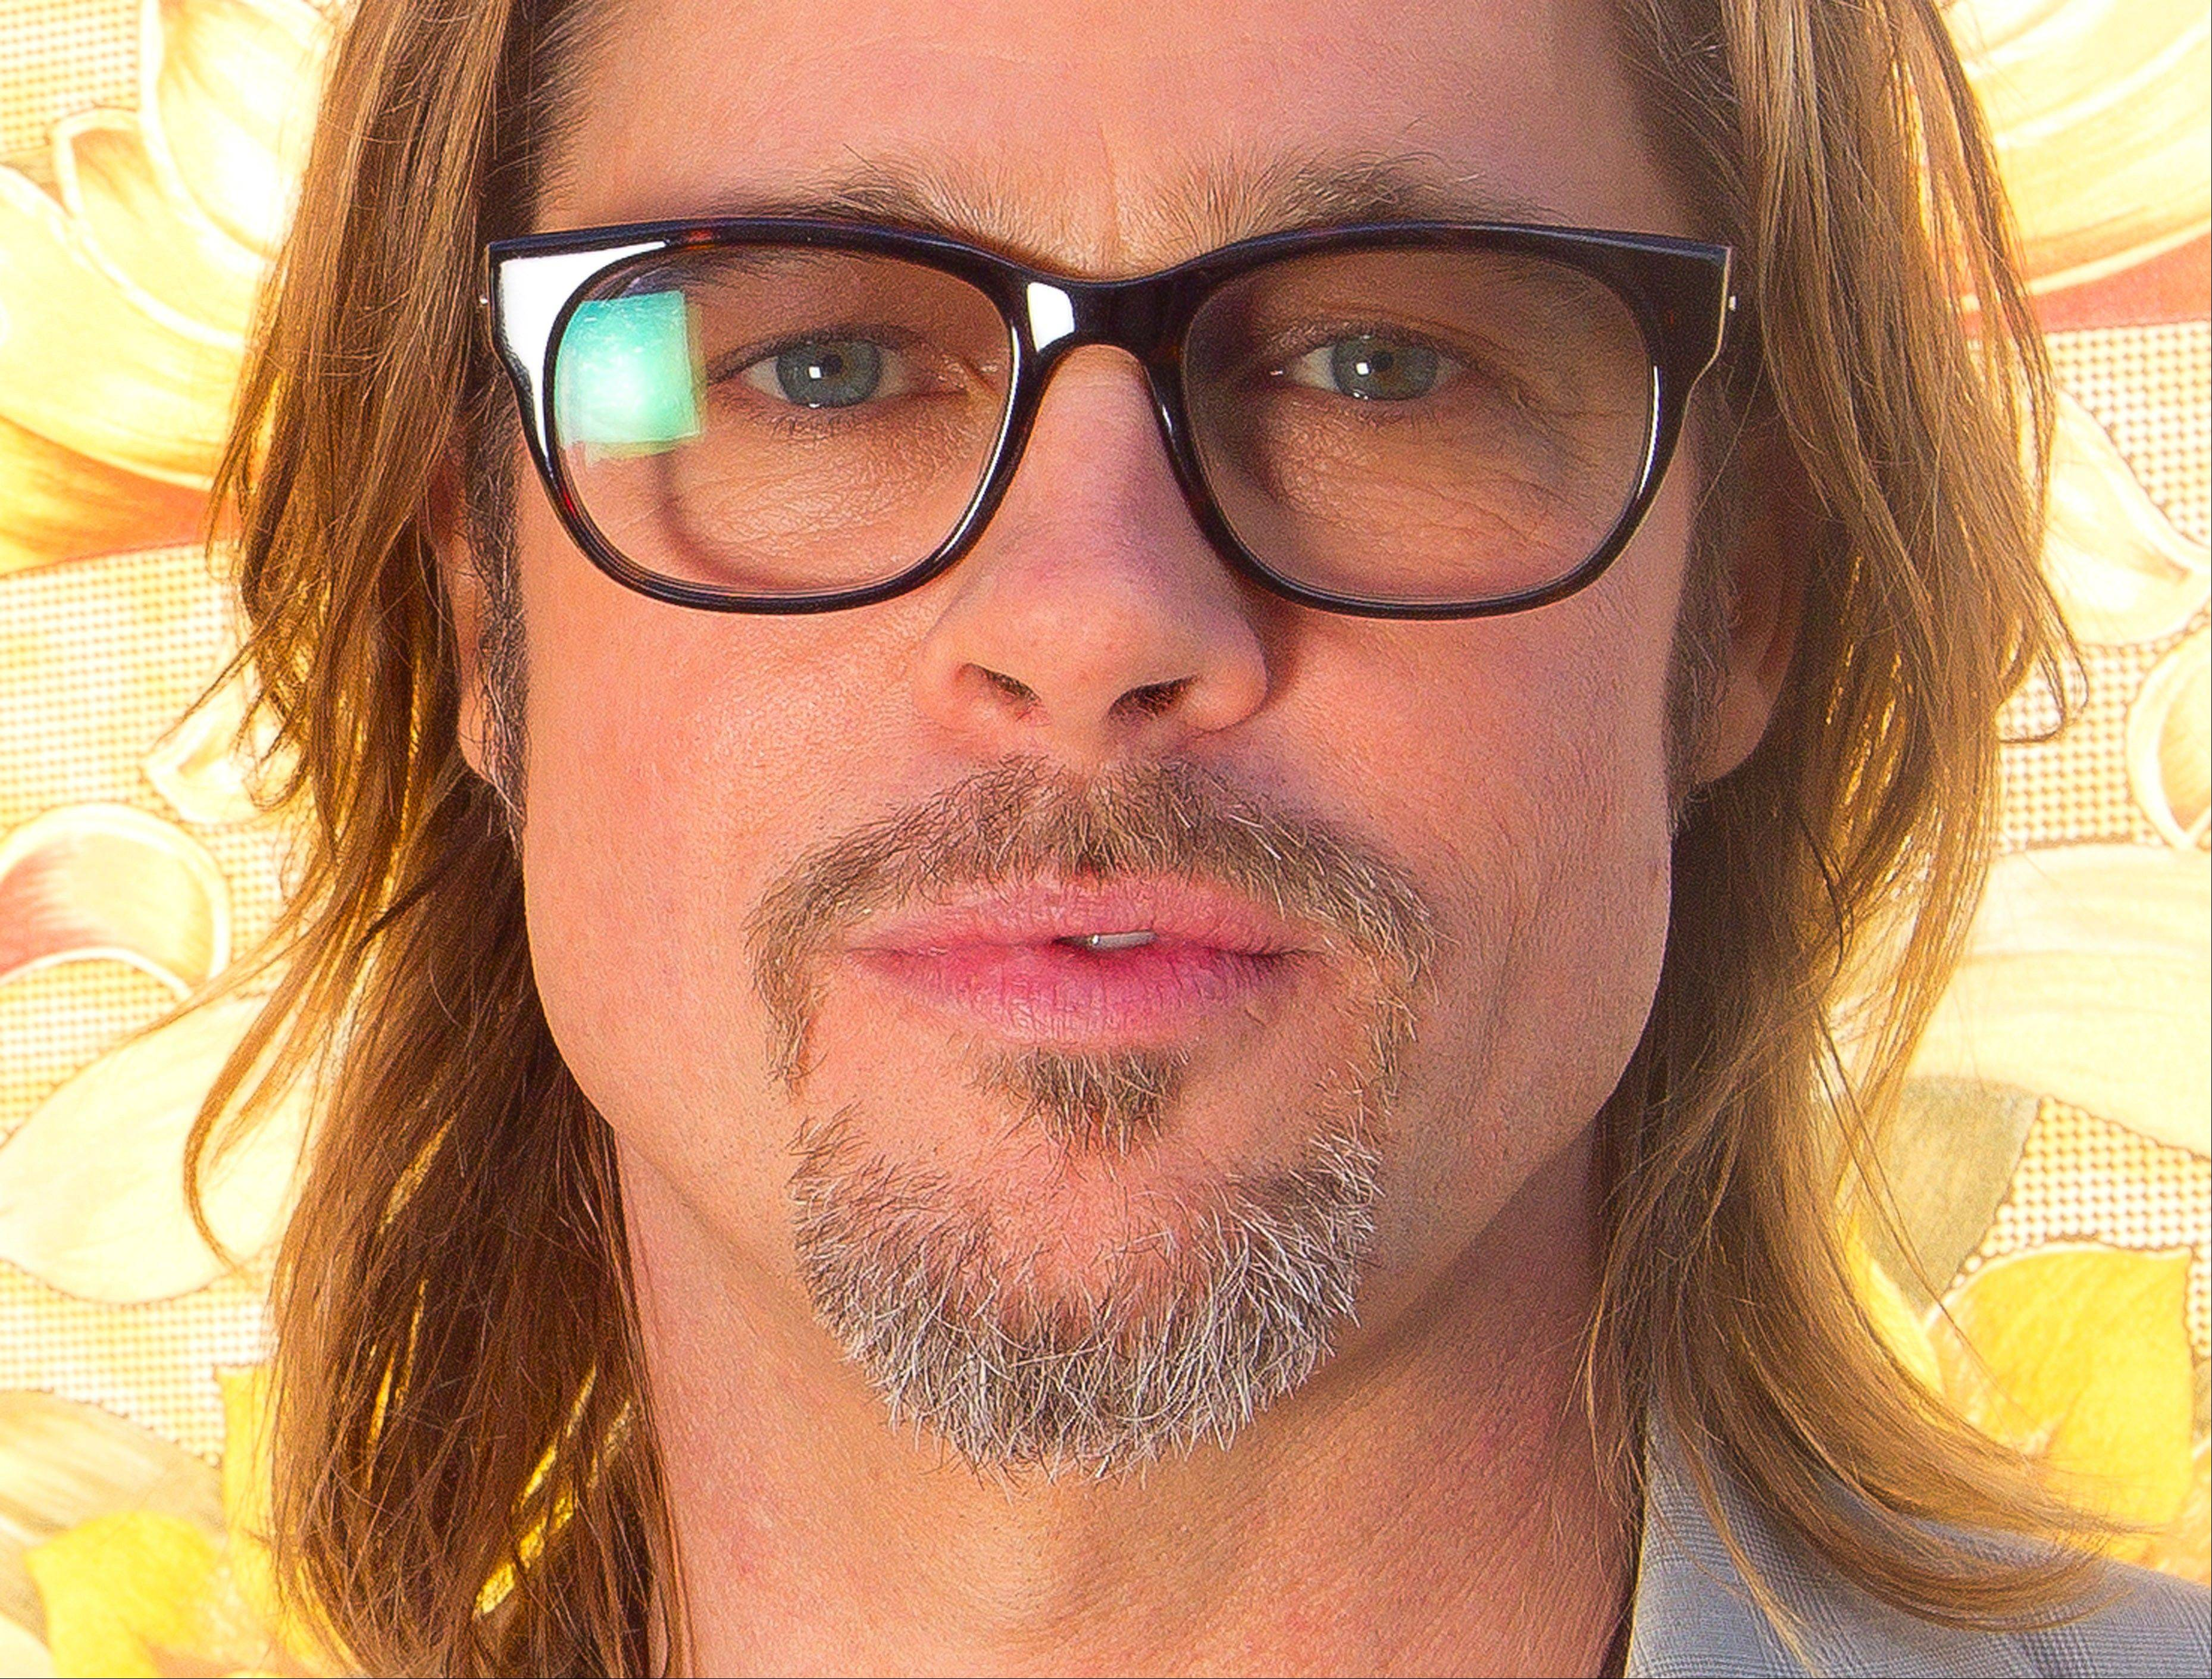 Brad Pitt is now on China�s version of Twitter, and his mysterious first tweet has drawn thousands of comments. The actor�s verified Sina Weibo account sent the message Monday: �It is the truth. Yup, I�m coming.�